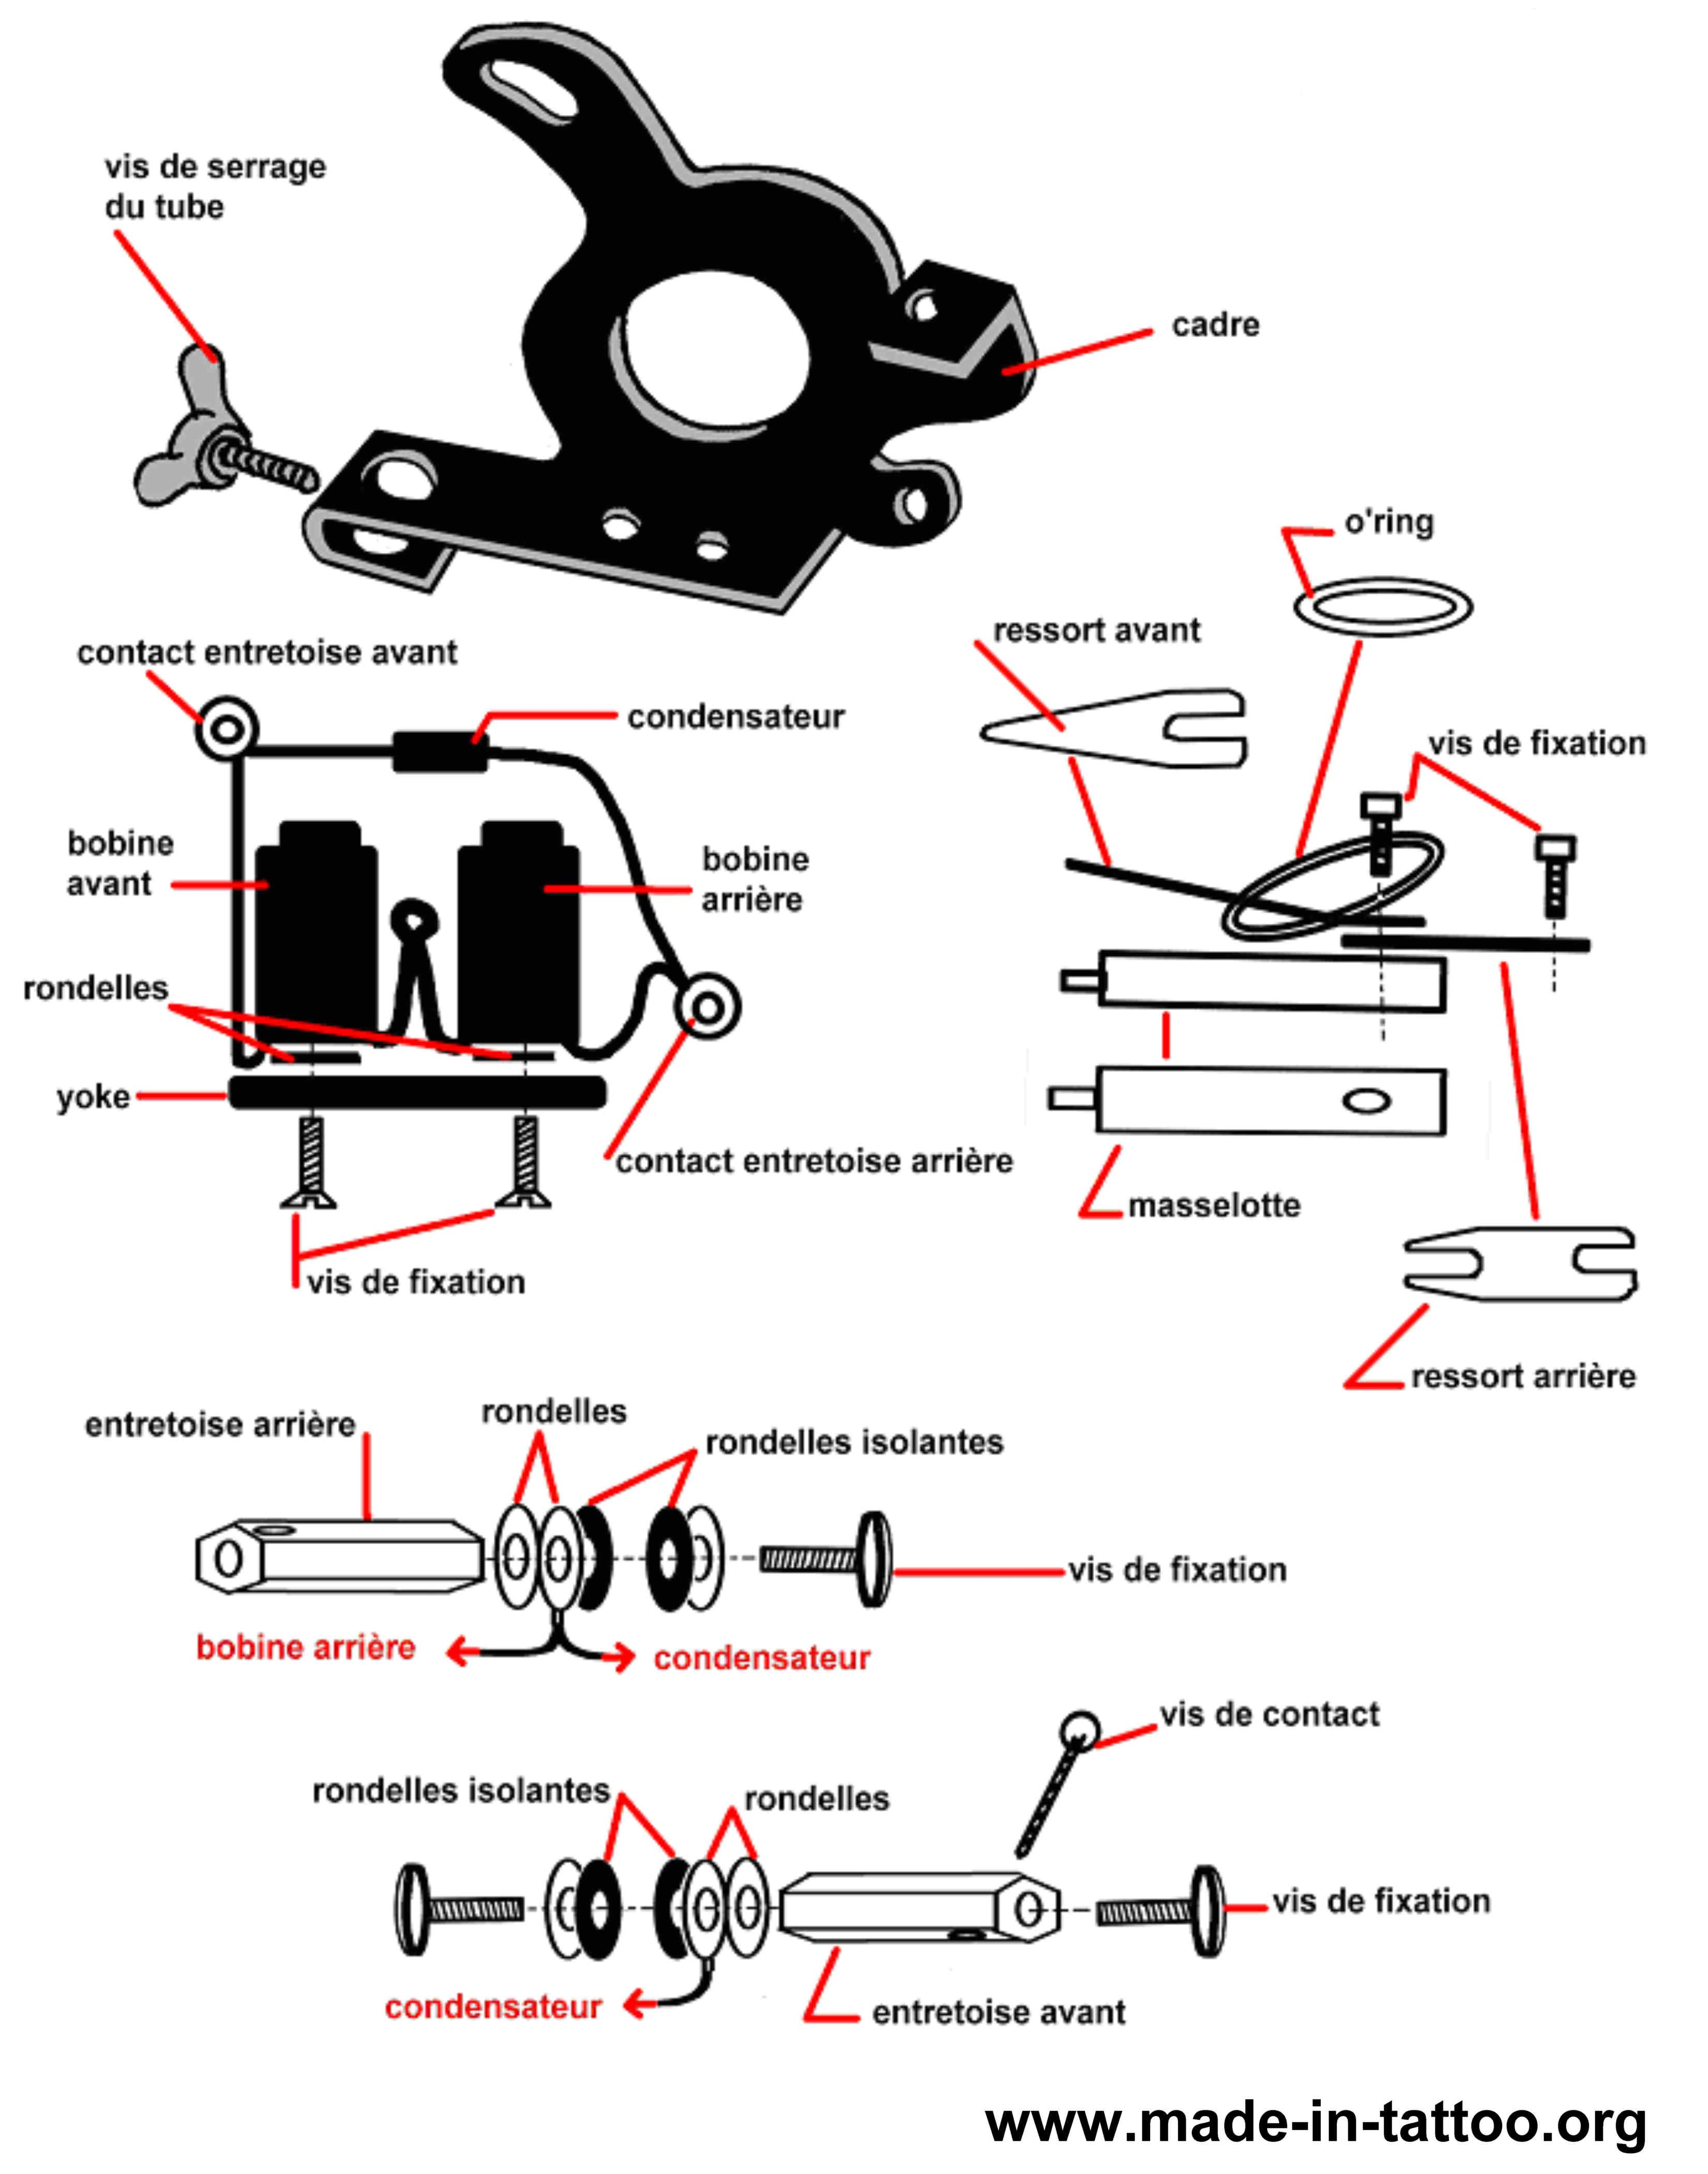 Vue Eclatee 33004200 Viandes Pinterest Tattoo Machines Diagram Pictures Equipment And More